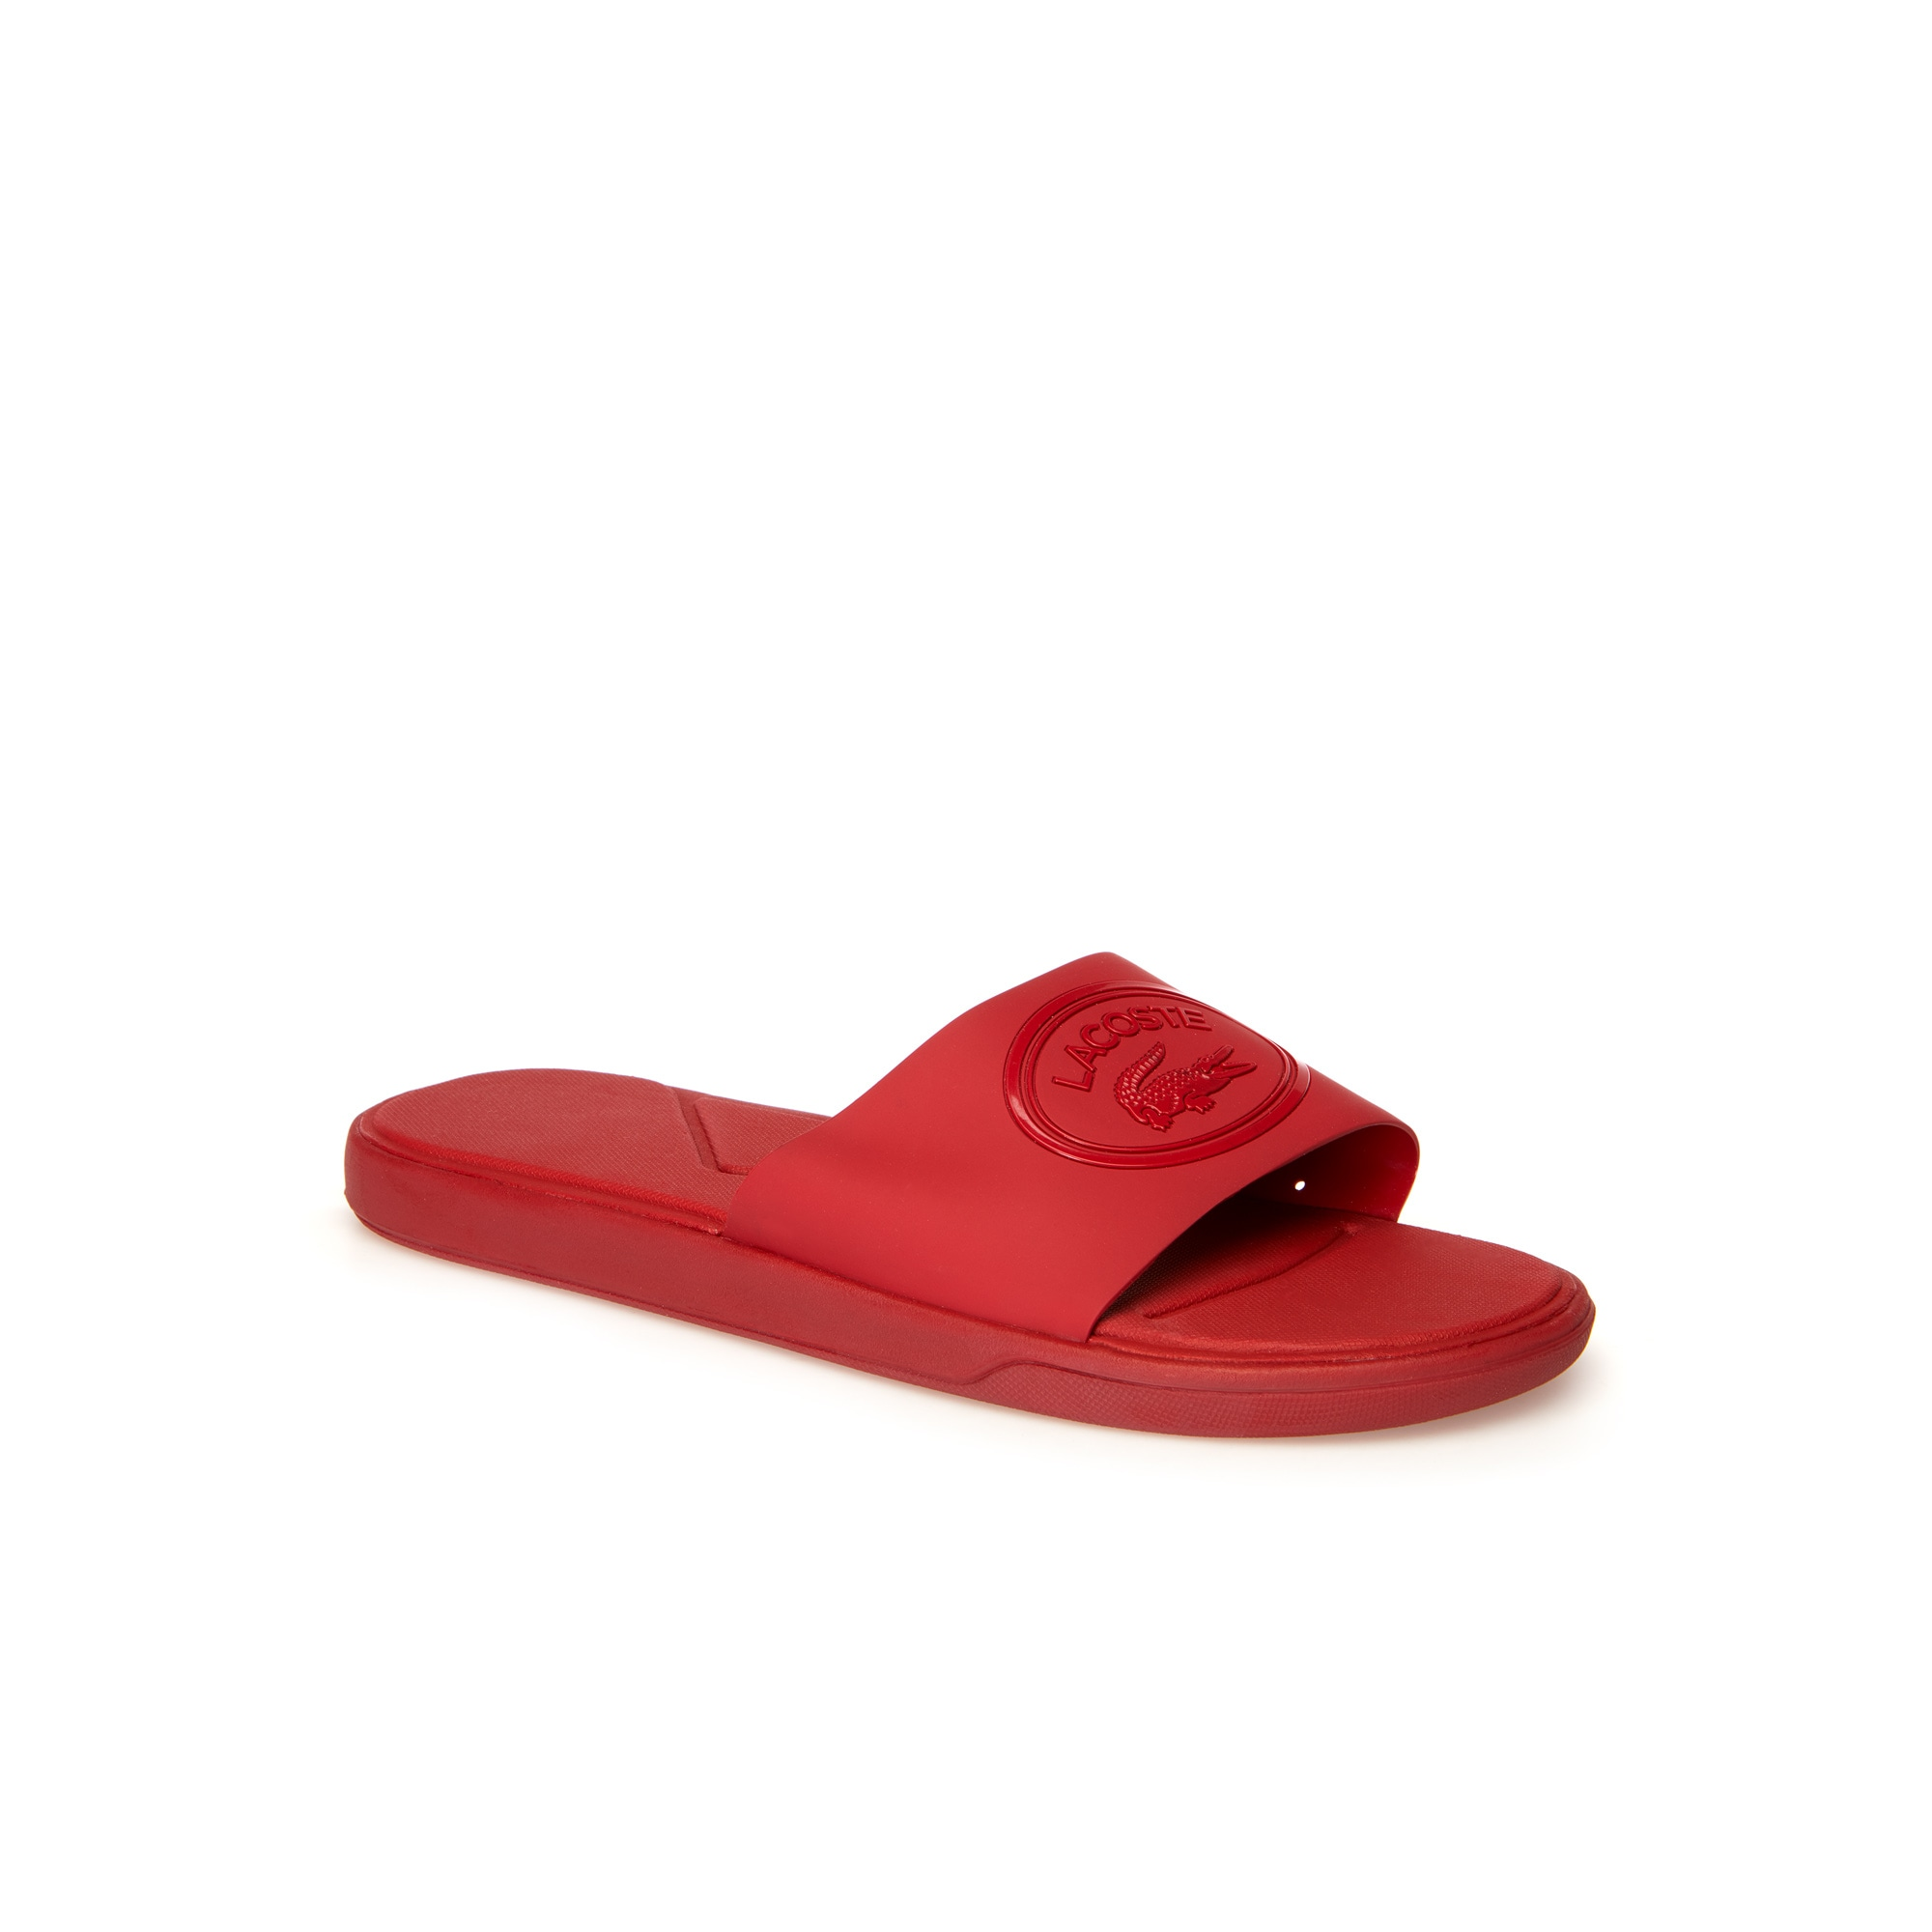 Men's L.30 Synthetic Slides